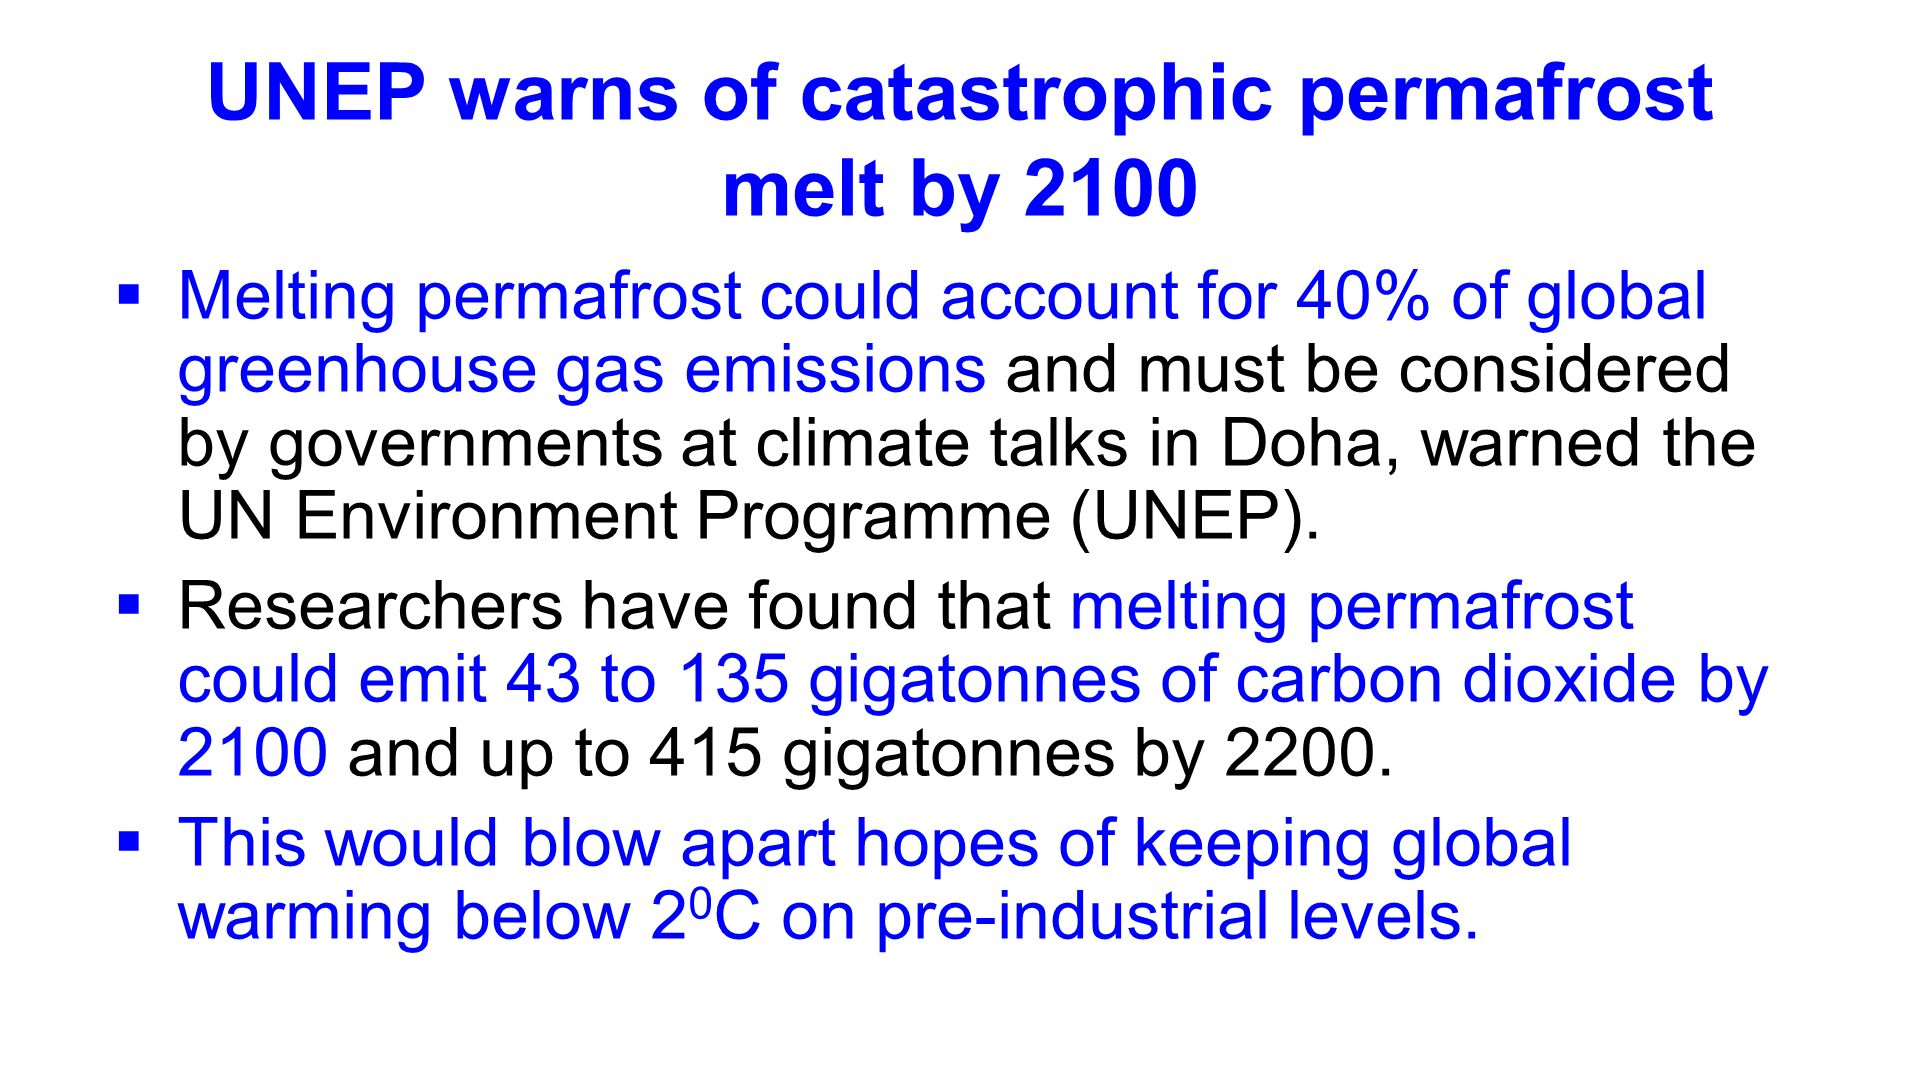 UNEP warns of catastrophic permafrost melt by 2100 Melting permafrost could account for 40% of global greenhouse gas emissions and must be considered